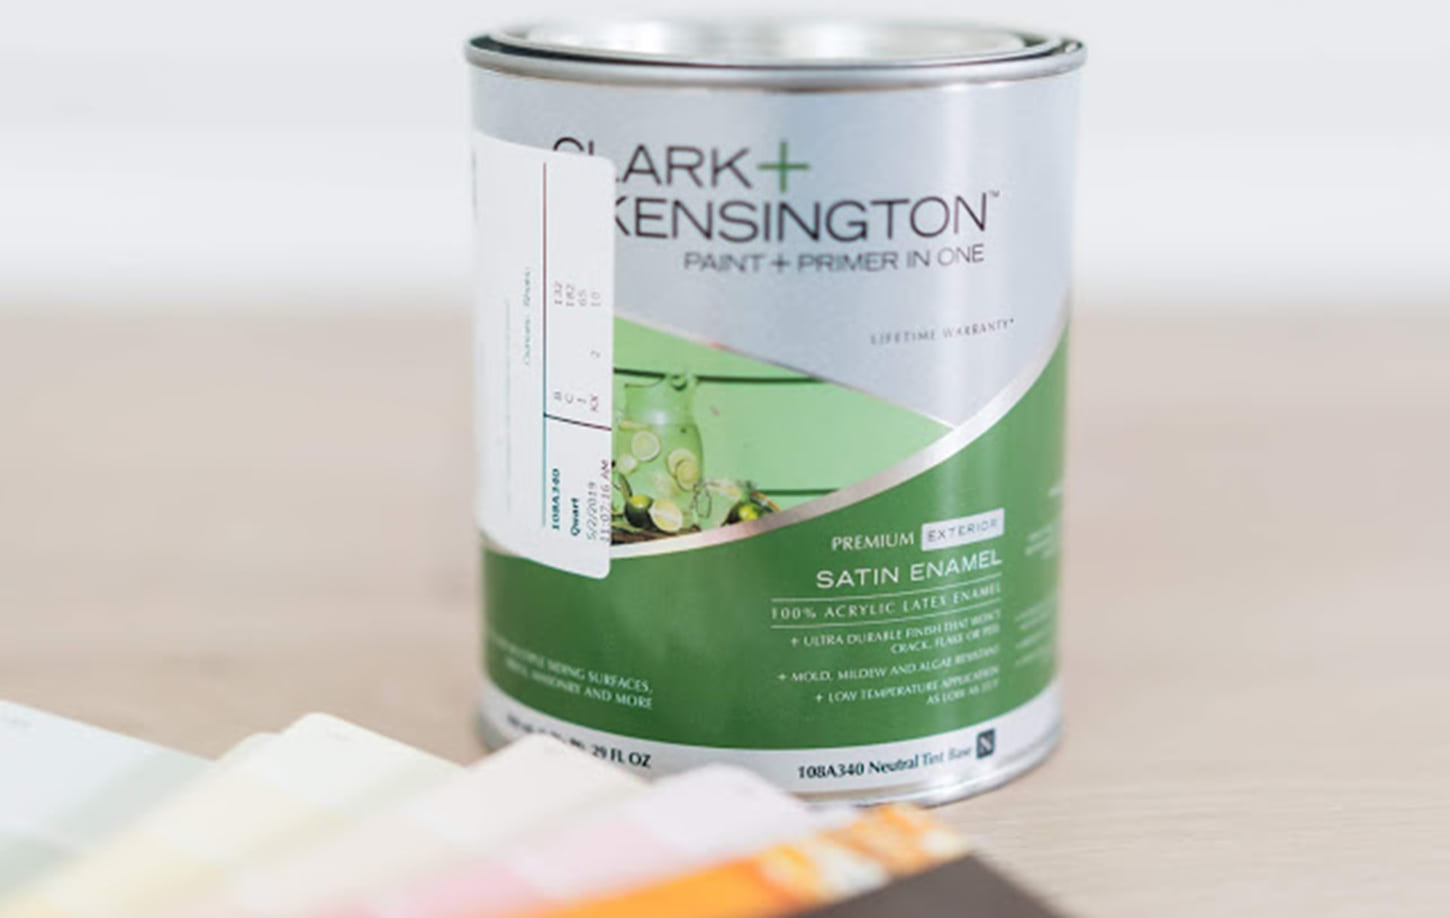 Clark + Kensington Paint Can and Color Swatches